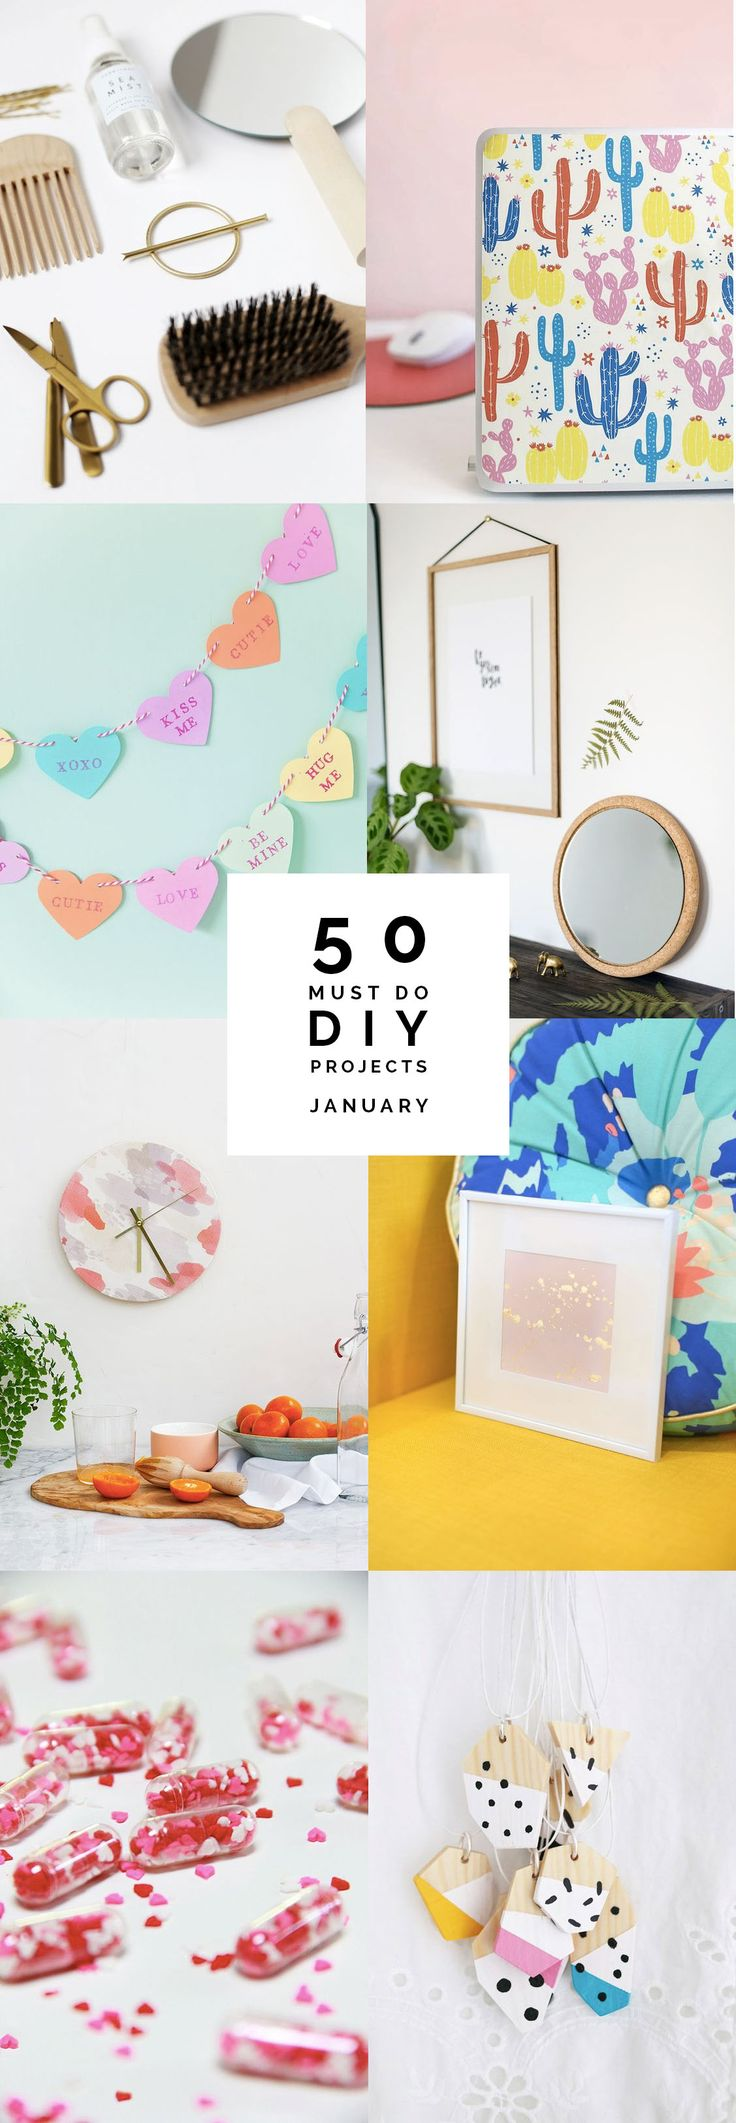 27356 best Home and DIY images on Pinterest | Craft ideas, Craft and ...